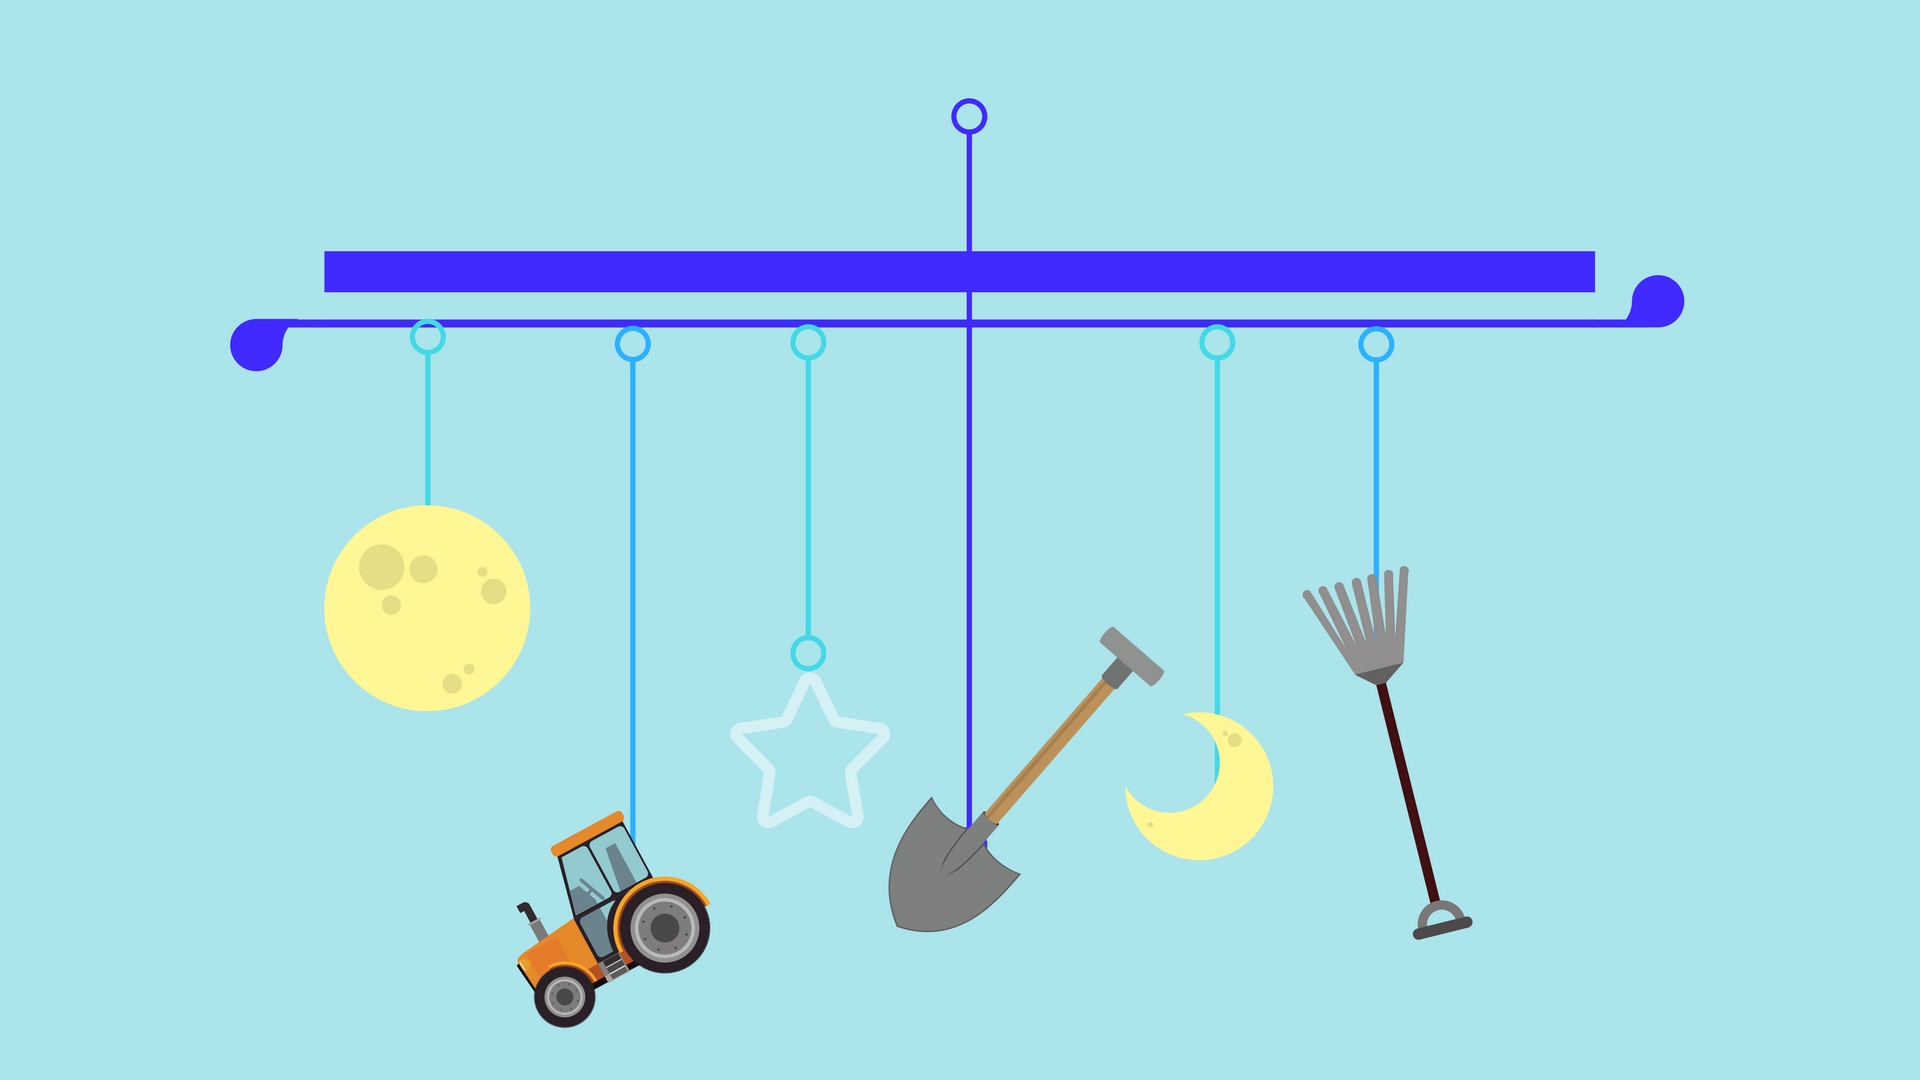 A mobile, on which farm tools tangle among stars and moons